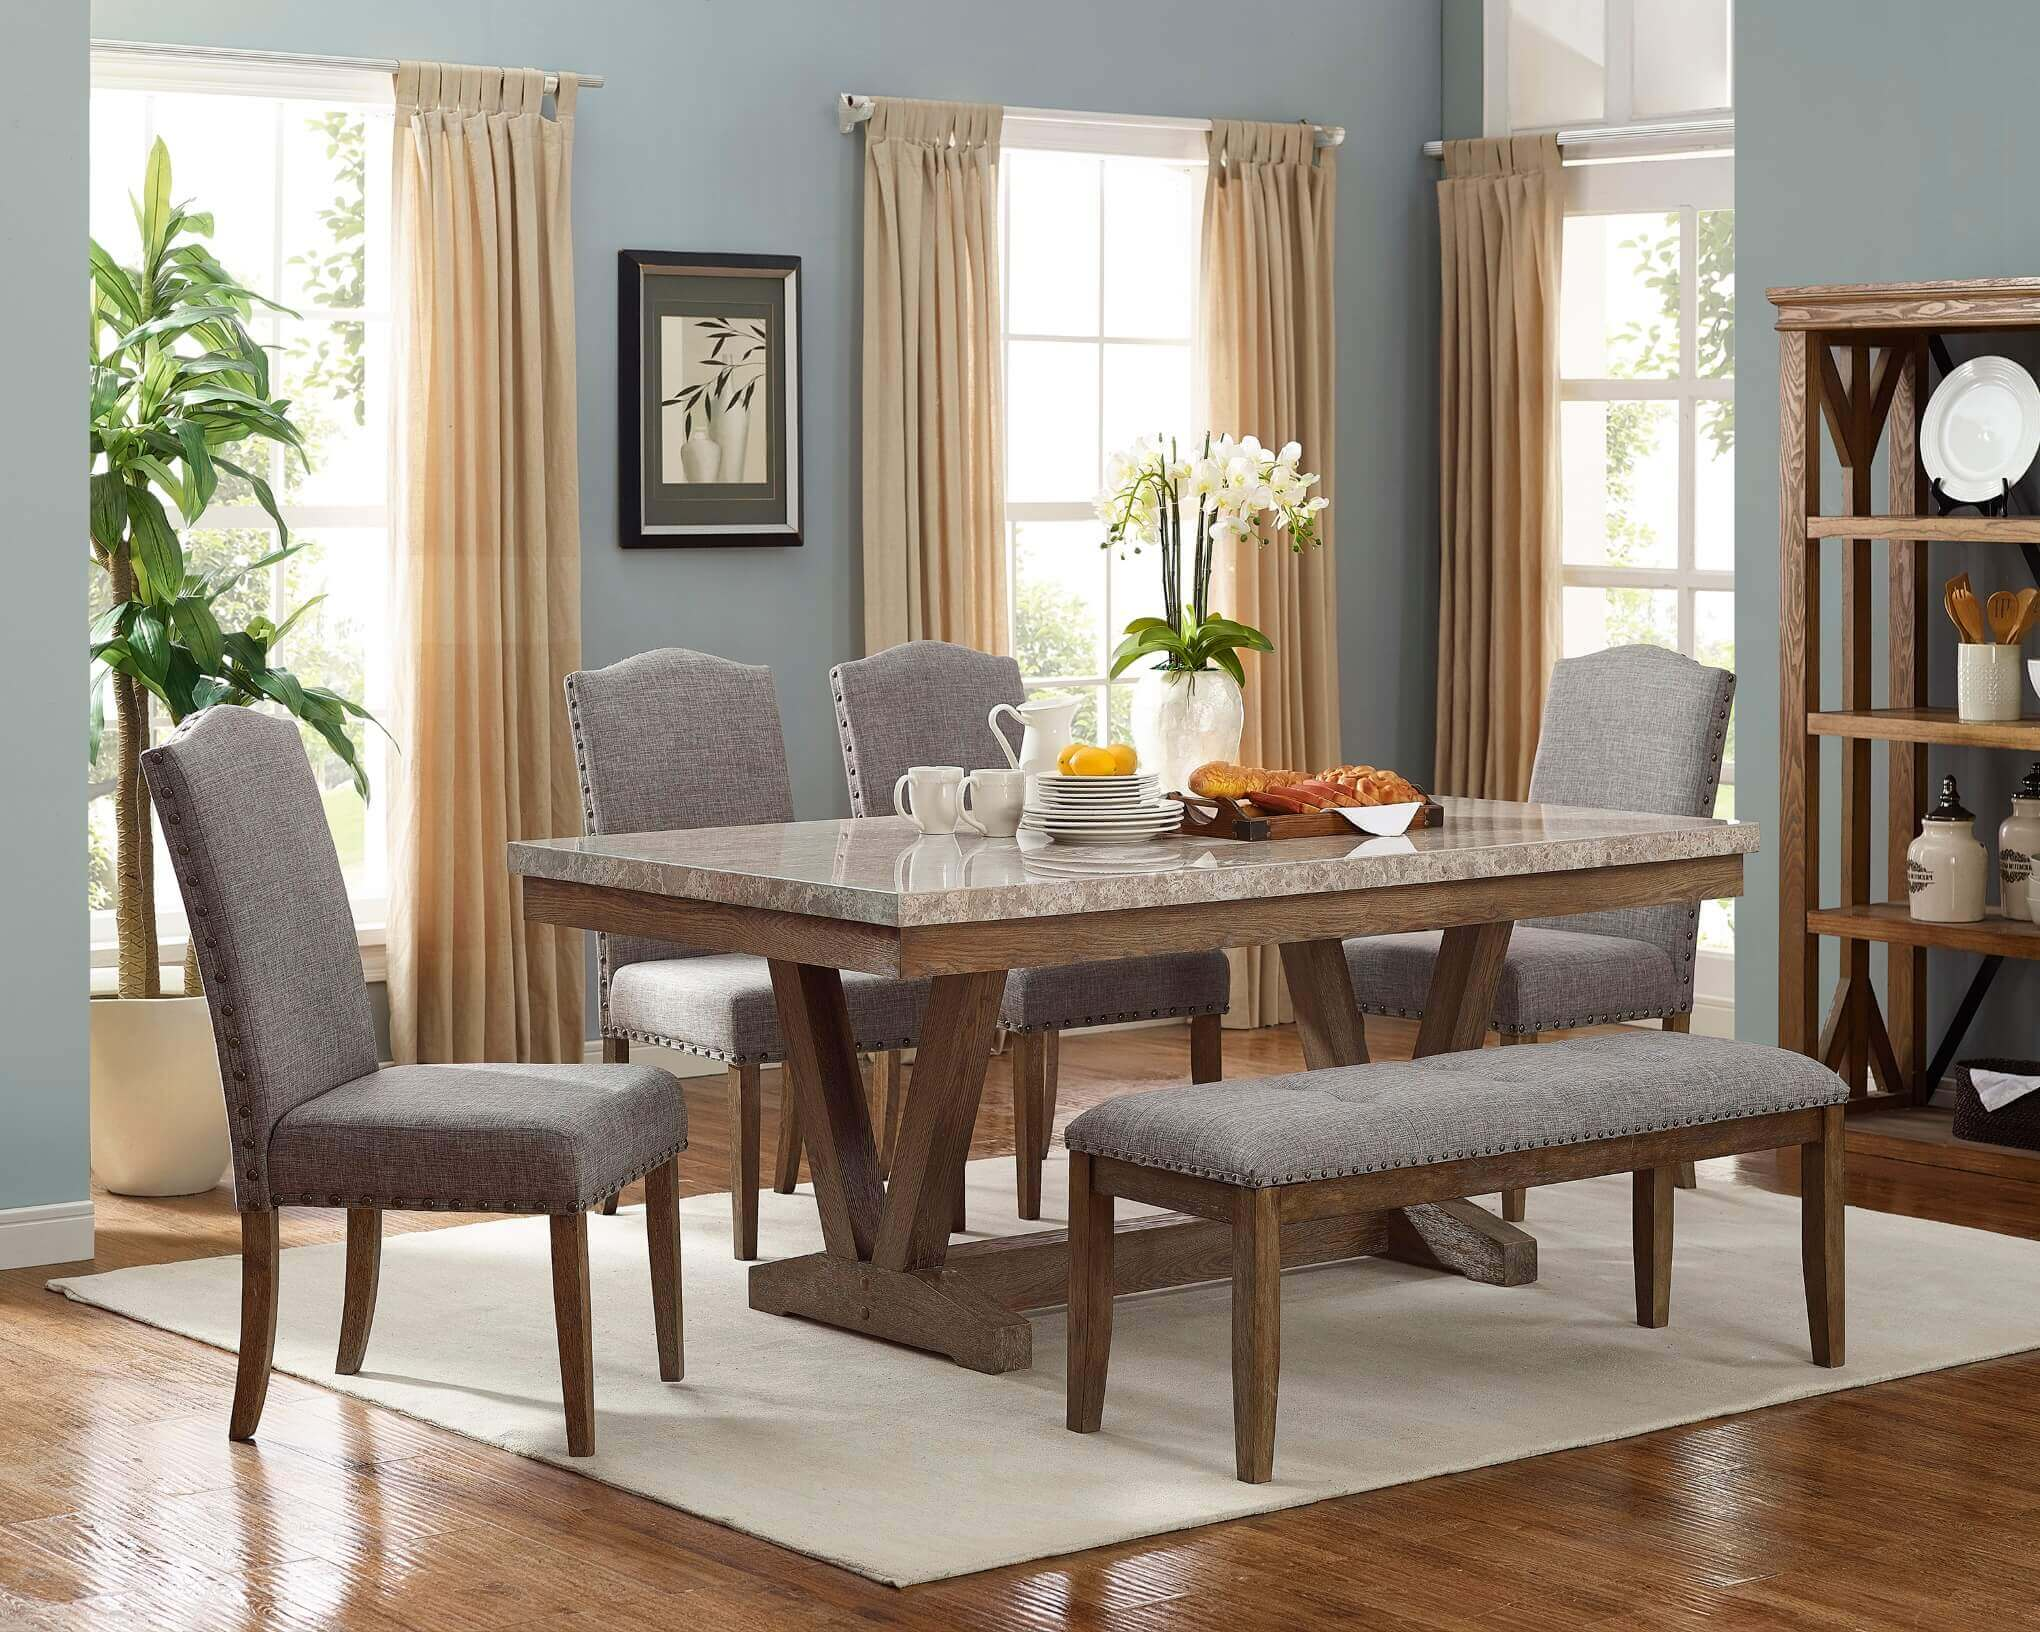 Vesper Marble Dining Room Set Dining Room Furniture